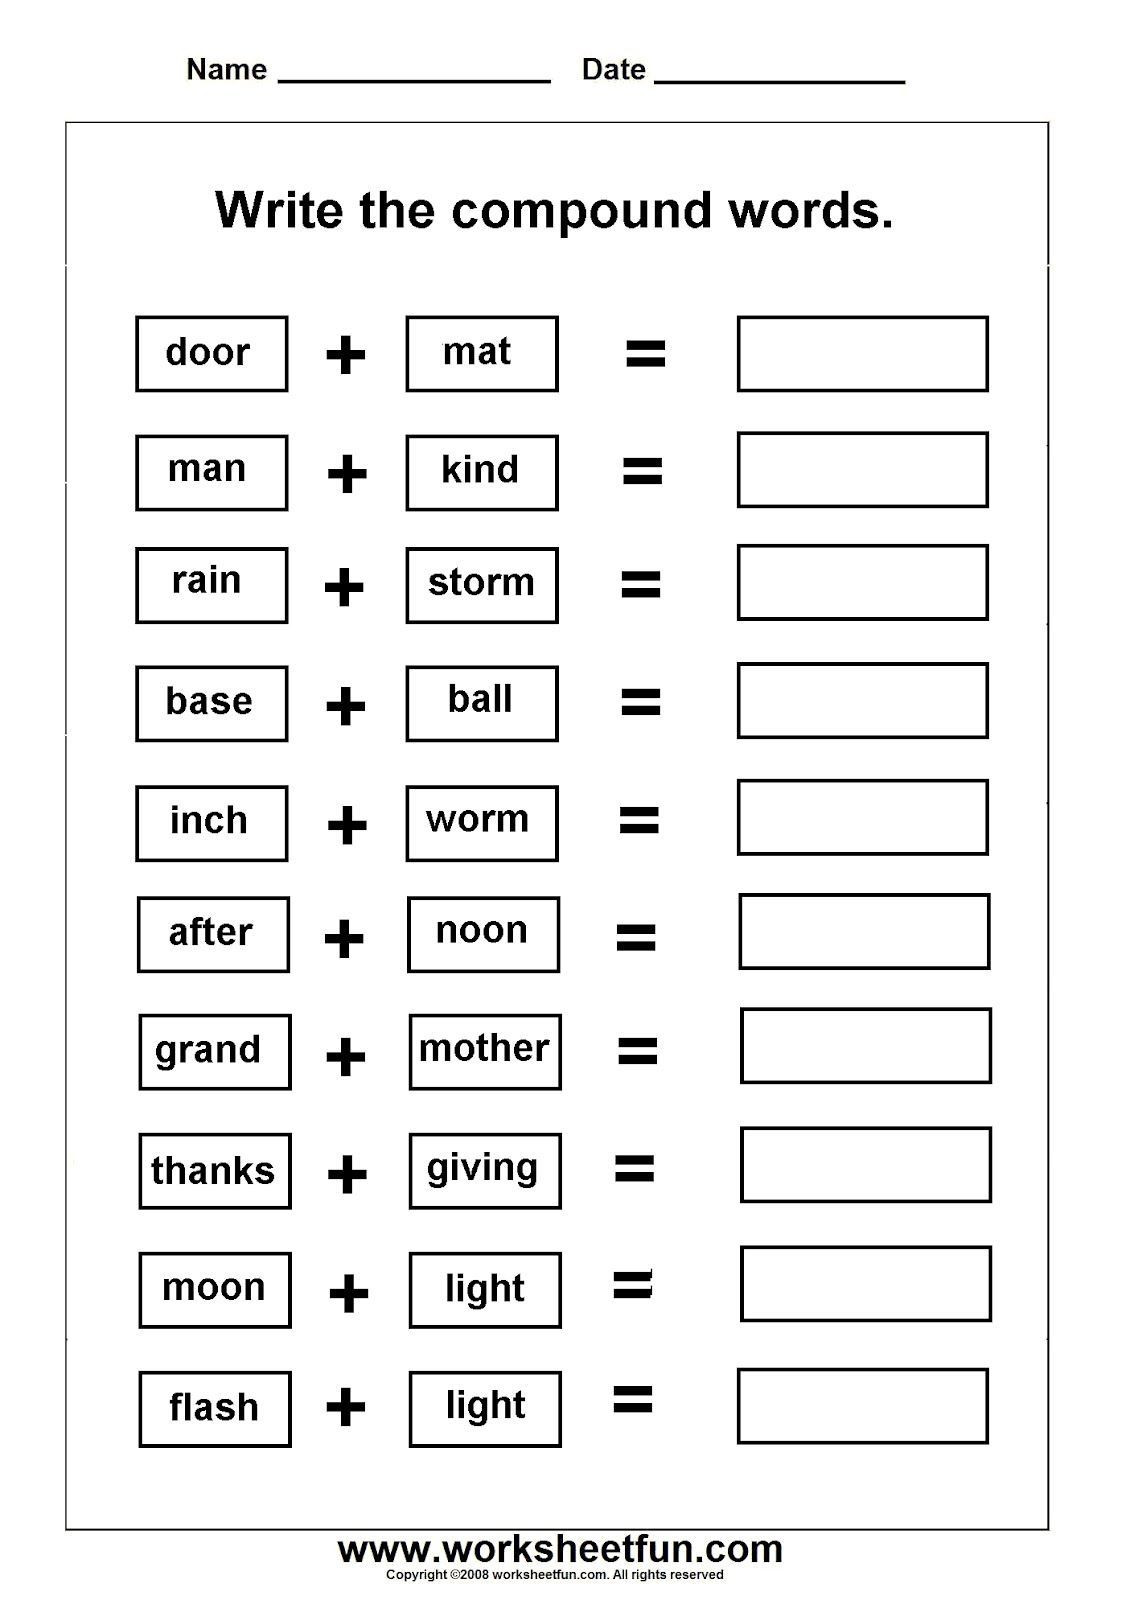 Compound Word Worksheet 2nd Grade Pound Words Worksheets Grade 3 Worksheets Pound Words